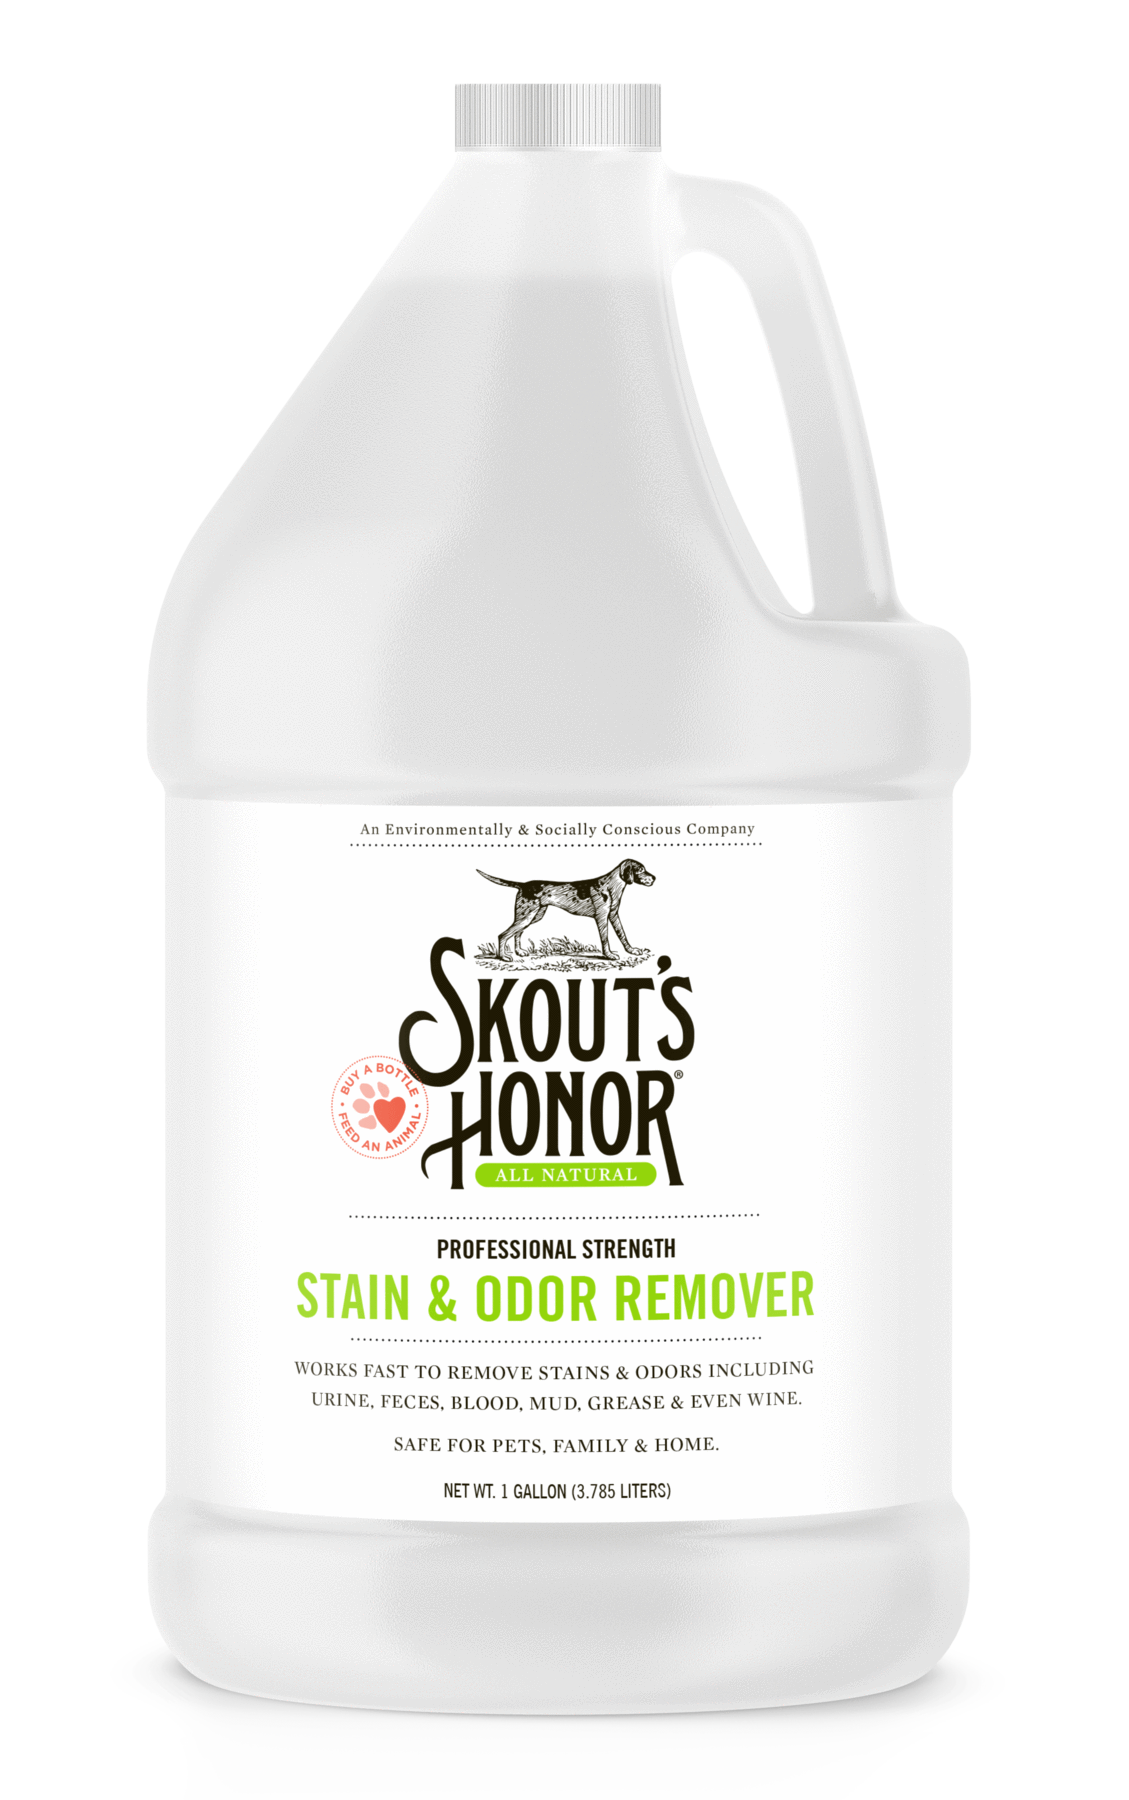 Skout's Honor Skout's Honor Stain & Odor Remover Cleaning Spray